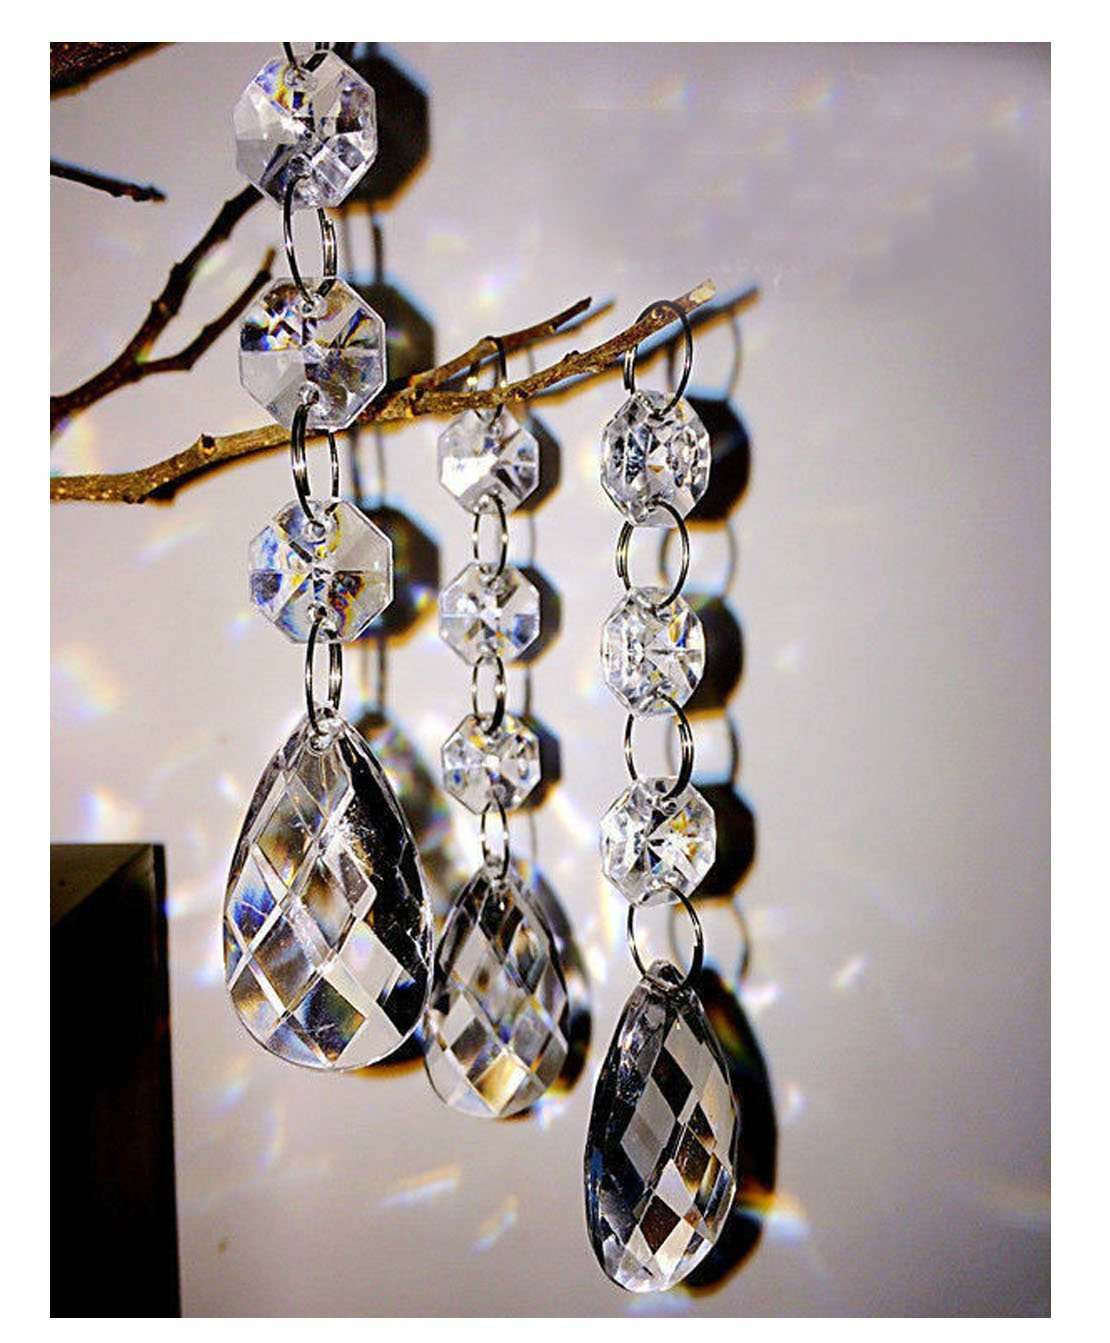 30PCS Teardrop Acrylic Crystal Beads Beads Garland Chandelier Hanging Wedding Party Decor tongtu 4336814831